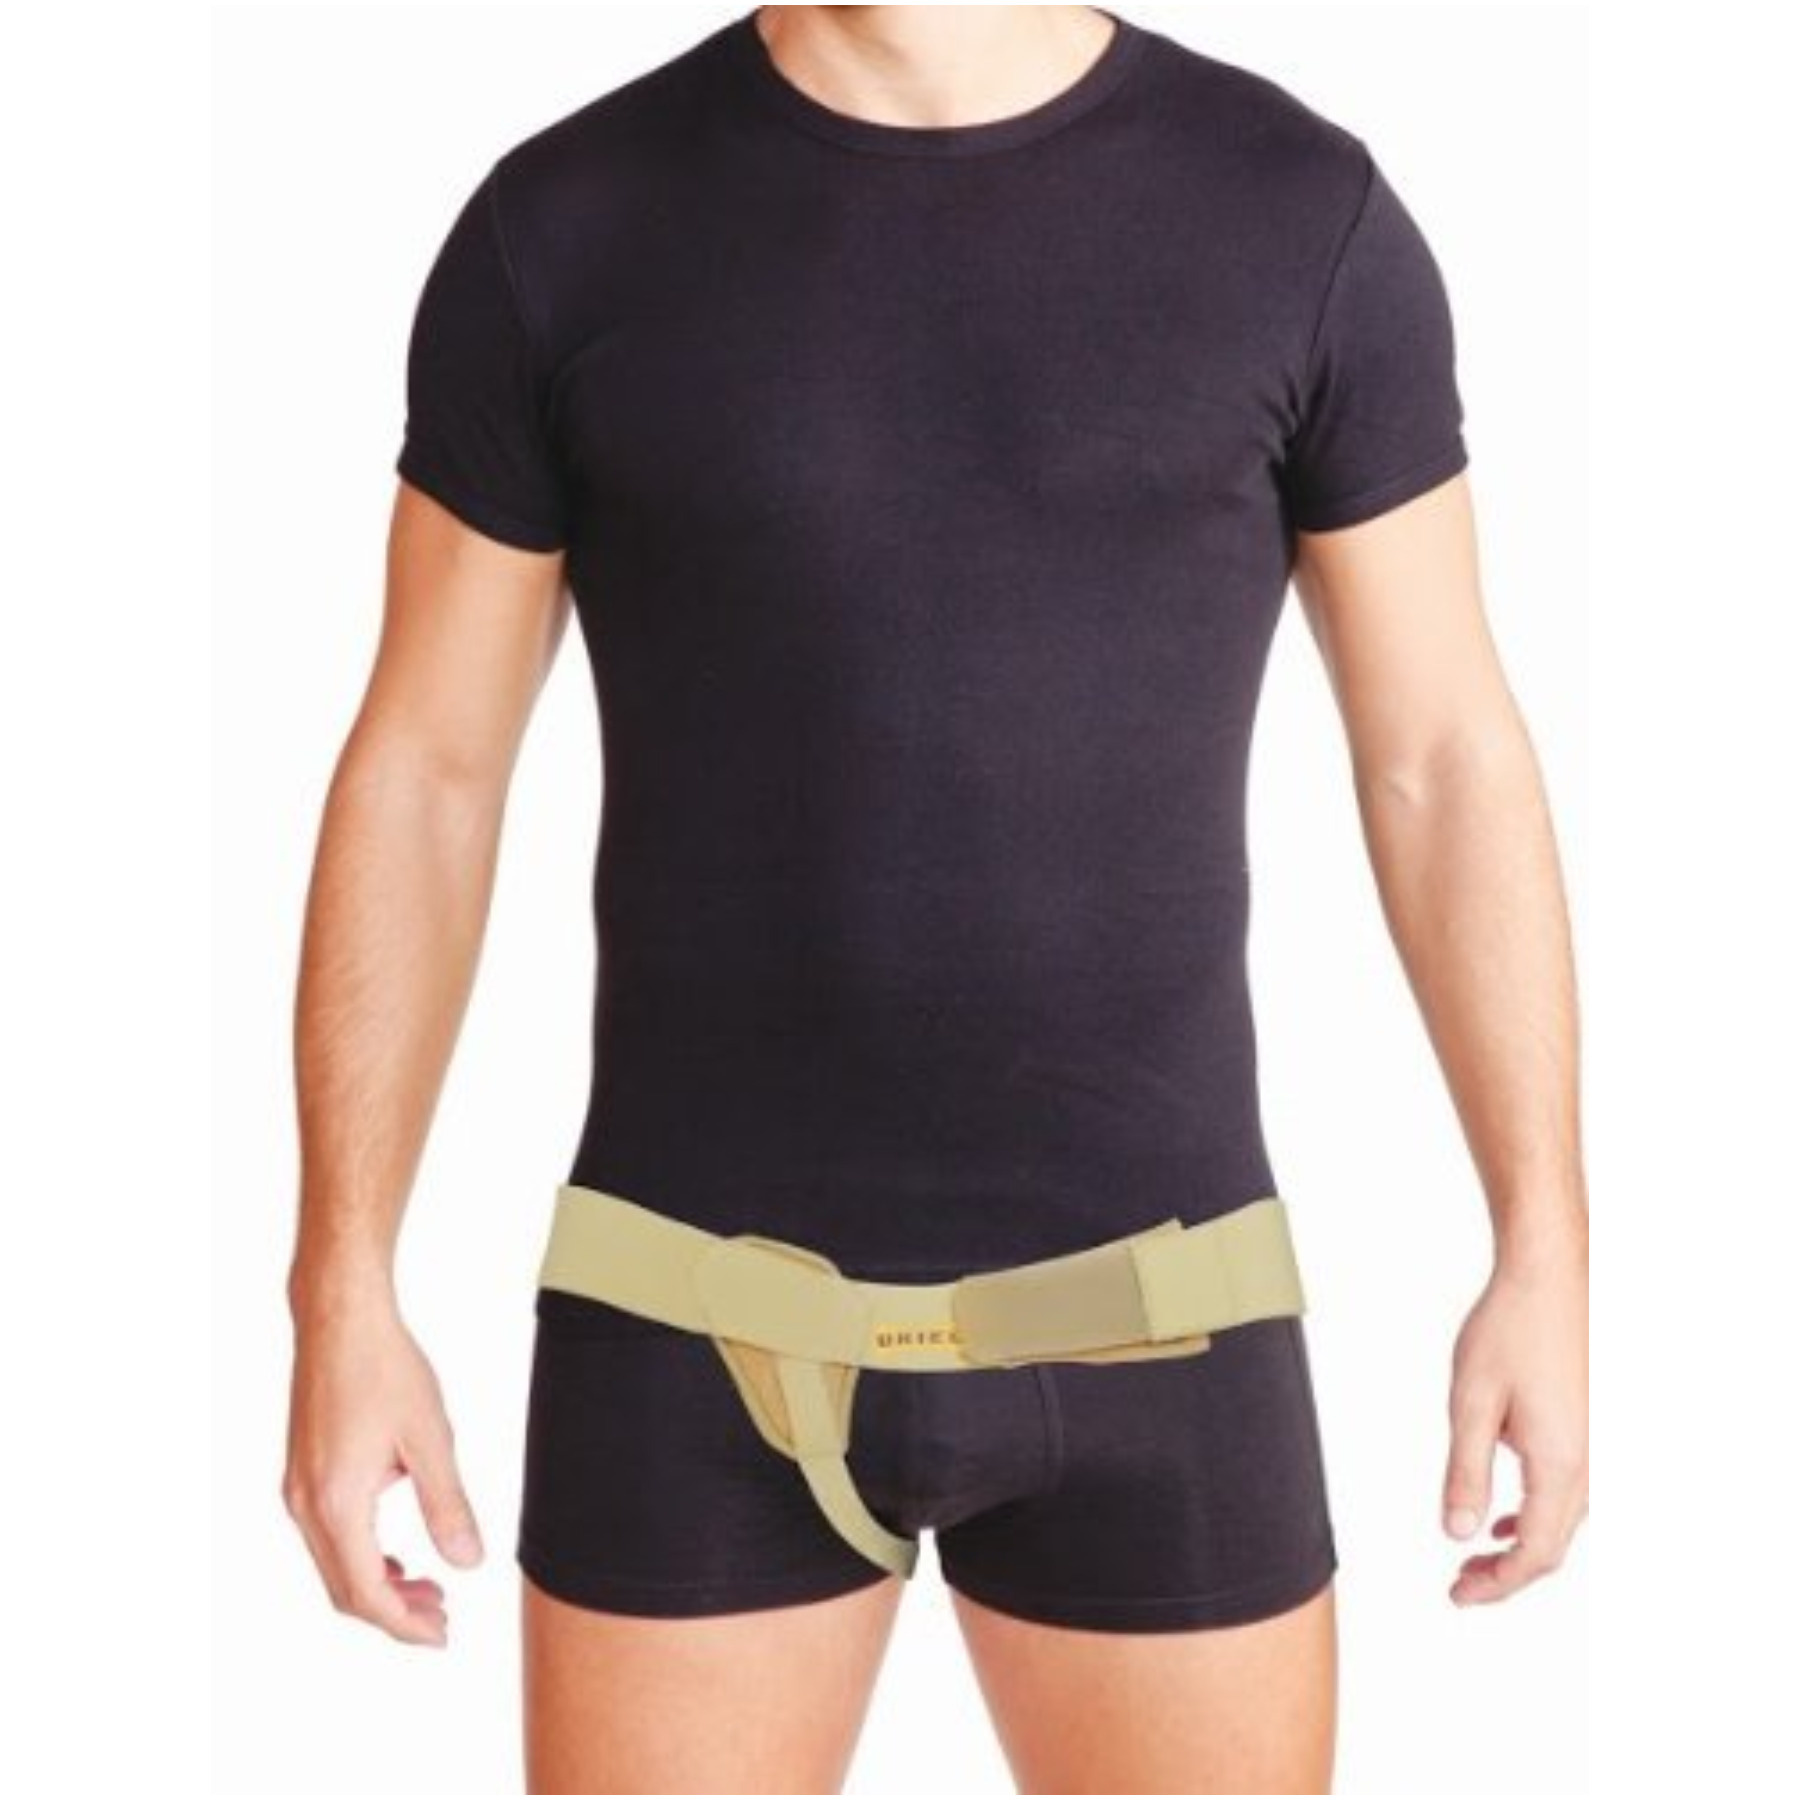 Meditex Uriel Right Side Inguinal Hernia Support Truss Belt with Compression Pad